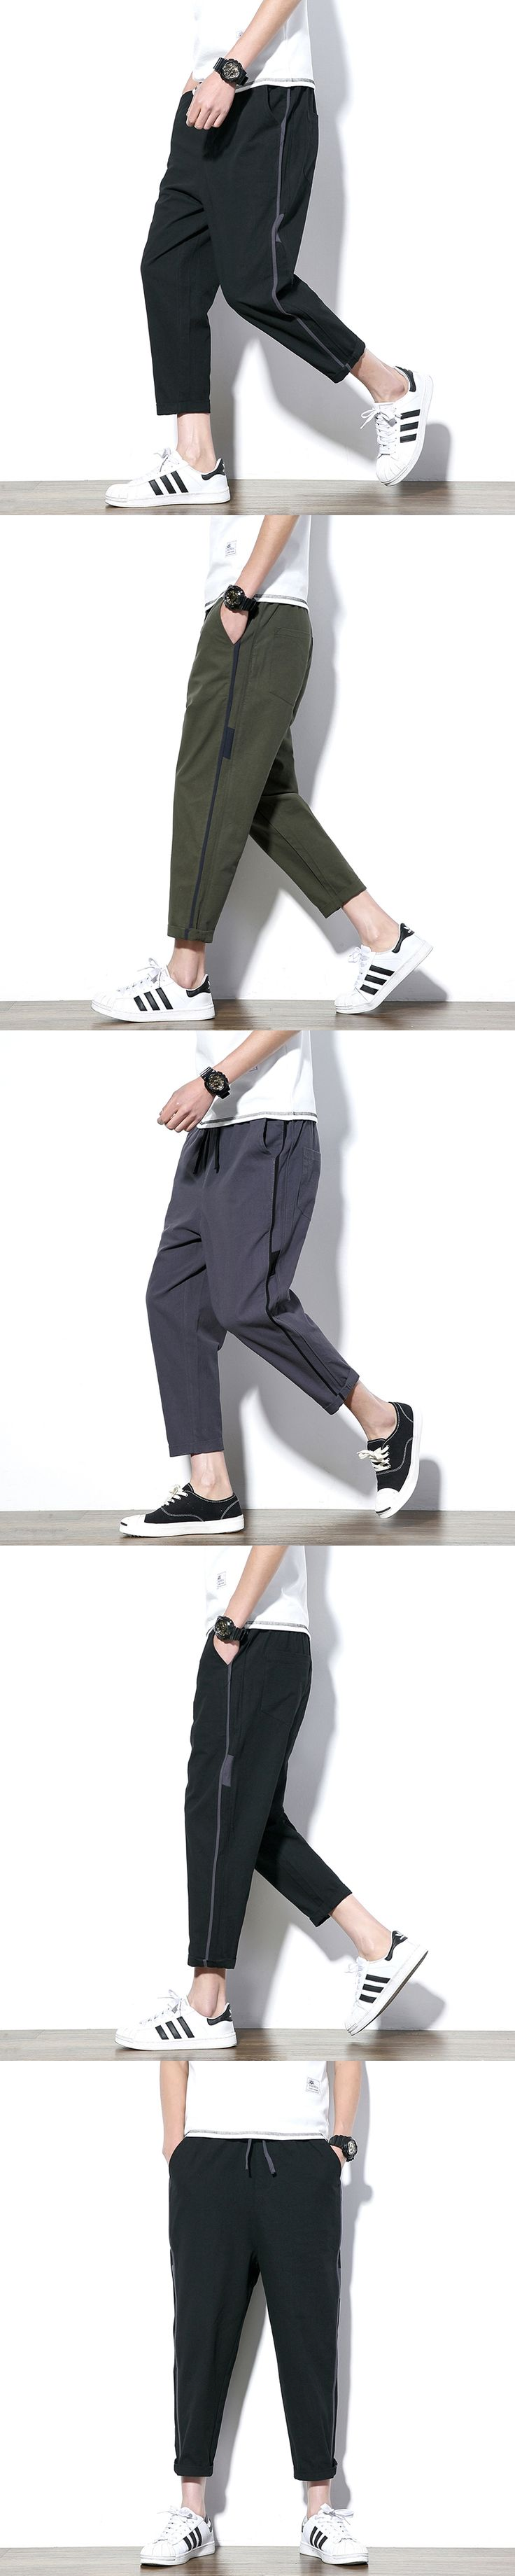 Large Size M-5XL 2017 Summer New Cotton Linen Male Loose Harem Pant High Quality Fashion Casual Men Wide Leg Trousers